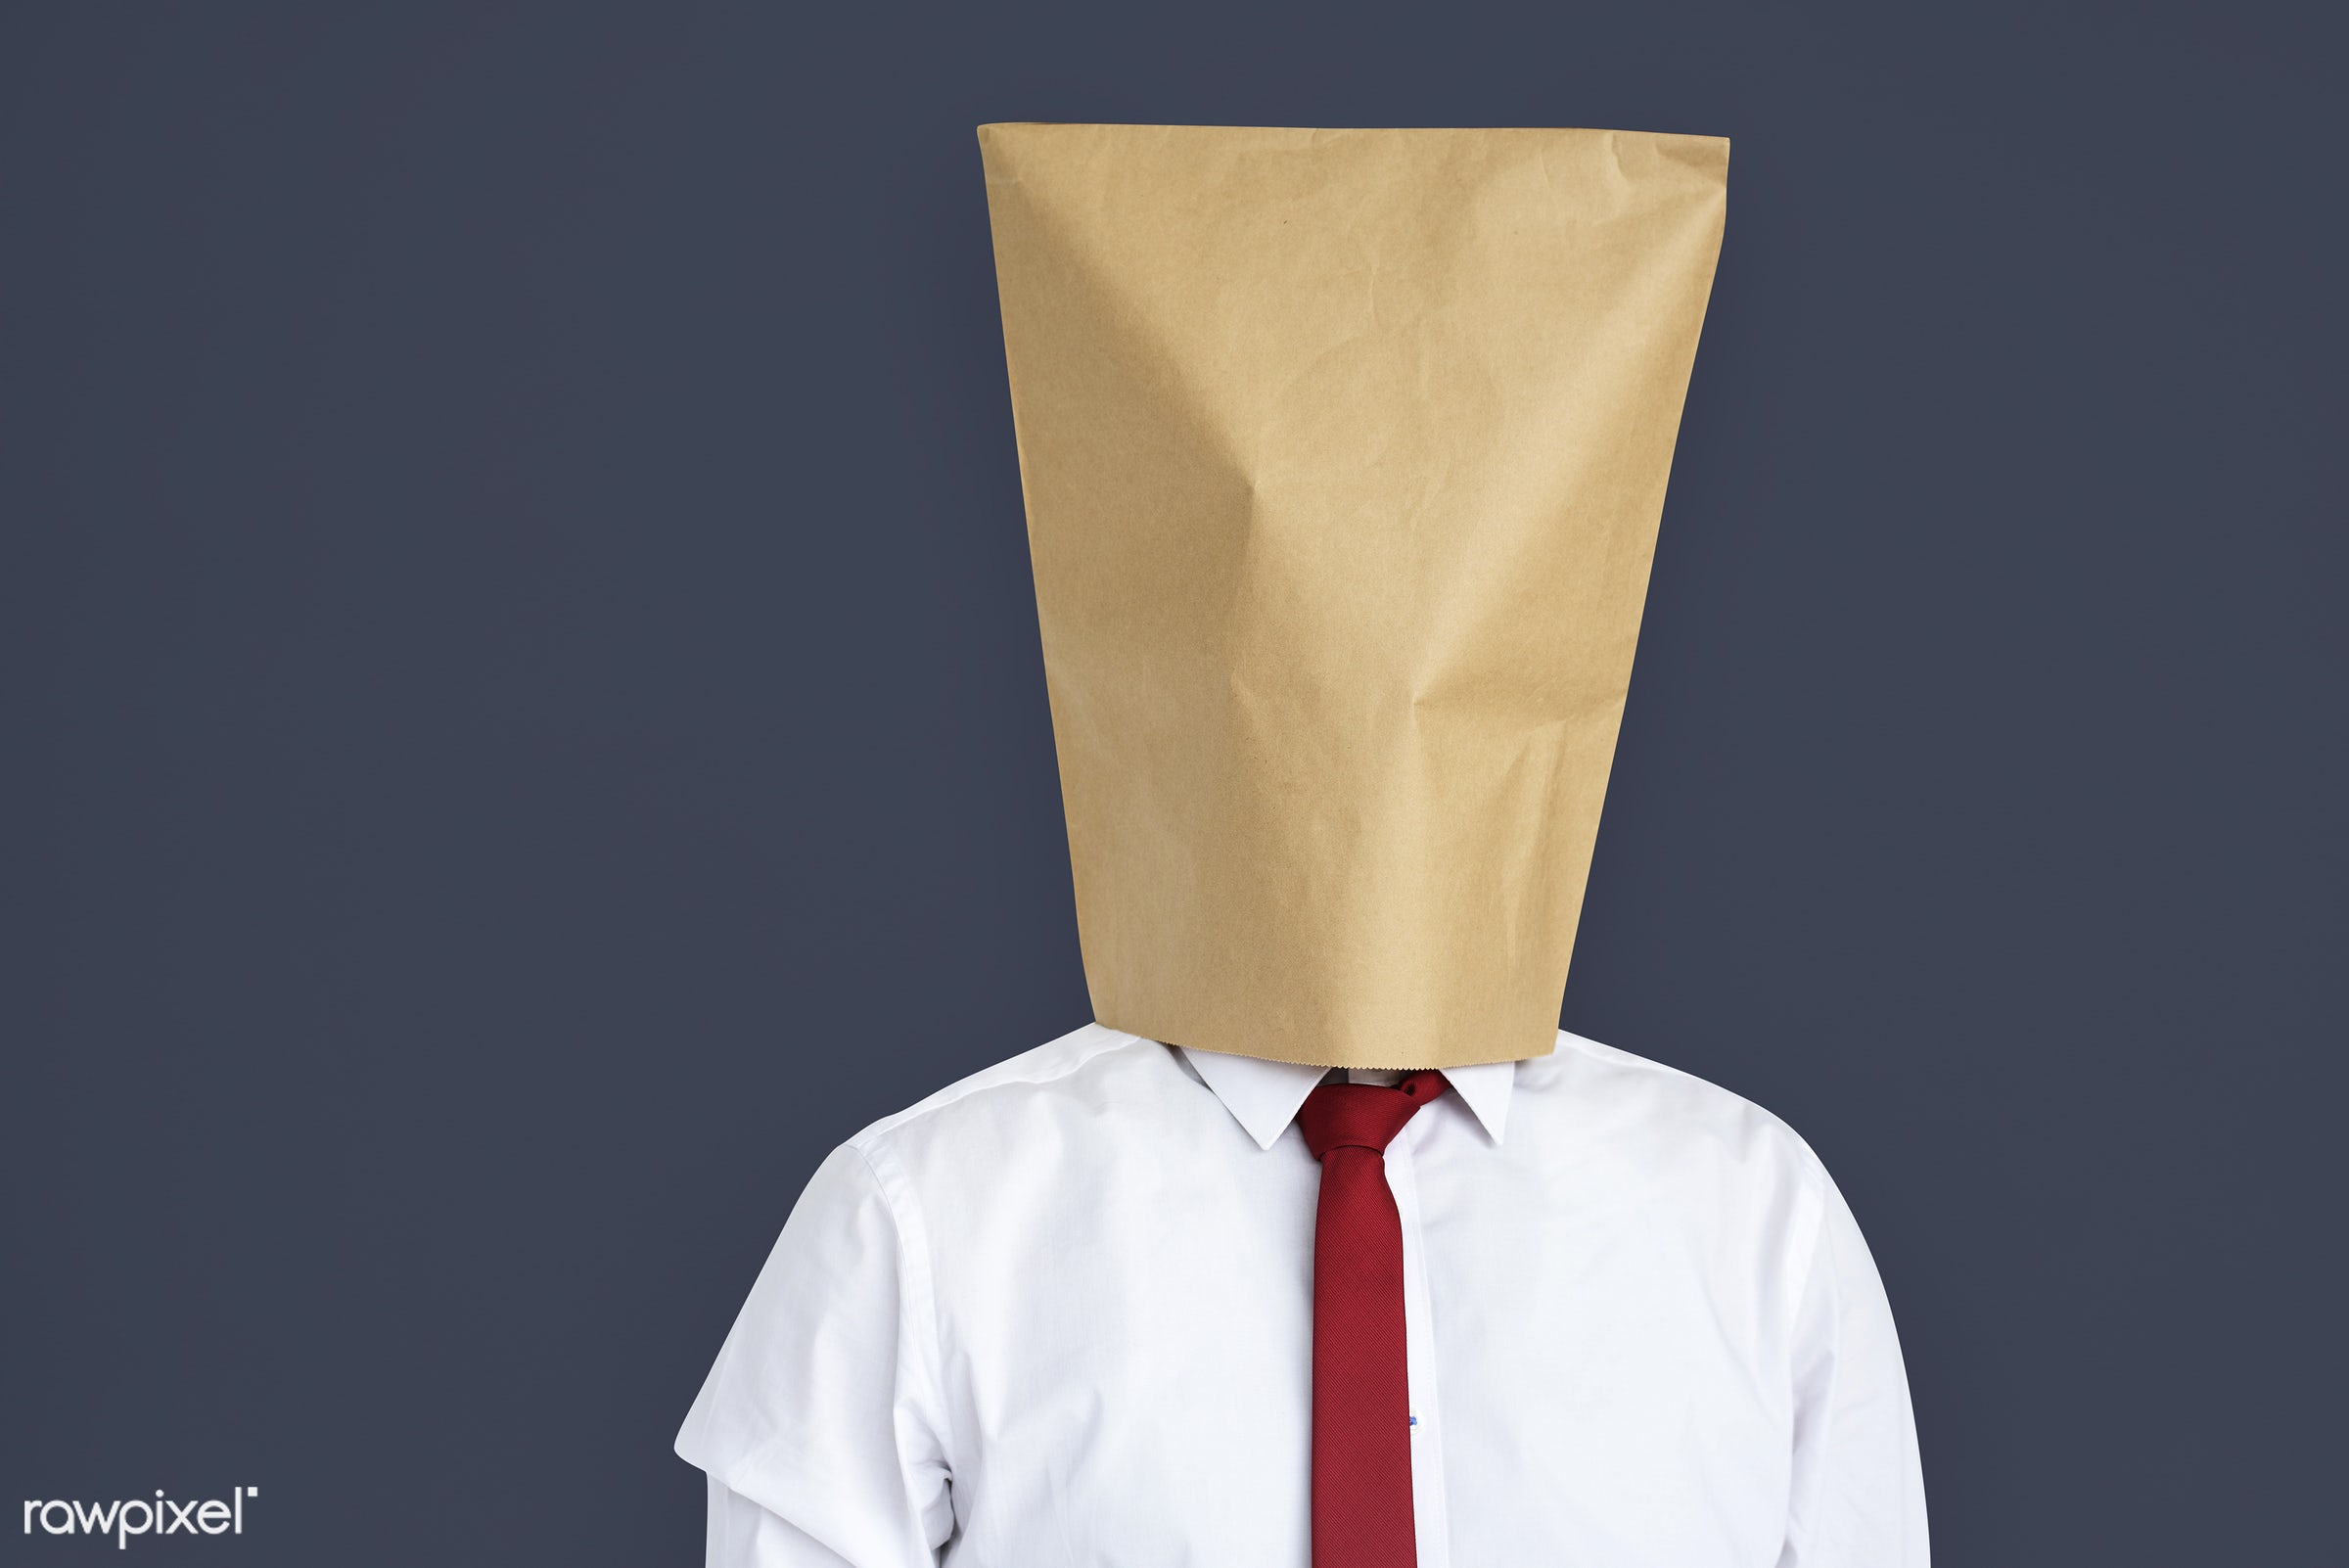 studio, shame, person, loss, sadness, ashamed, people, cover, businessman, man, humiliated, isolated, embarrassment, bag,...